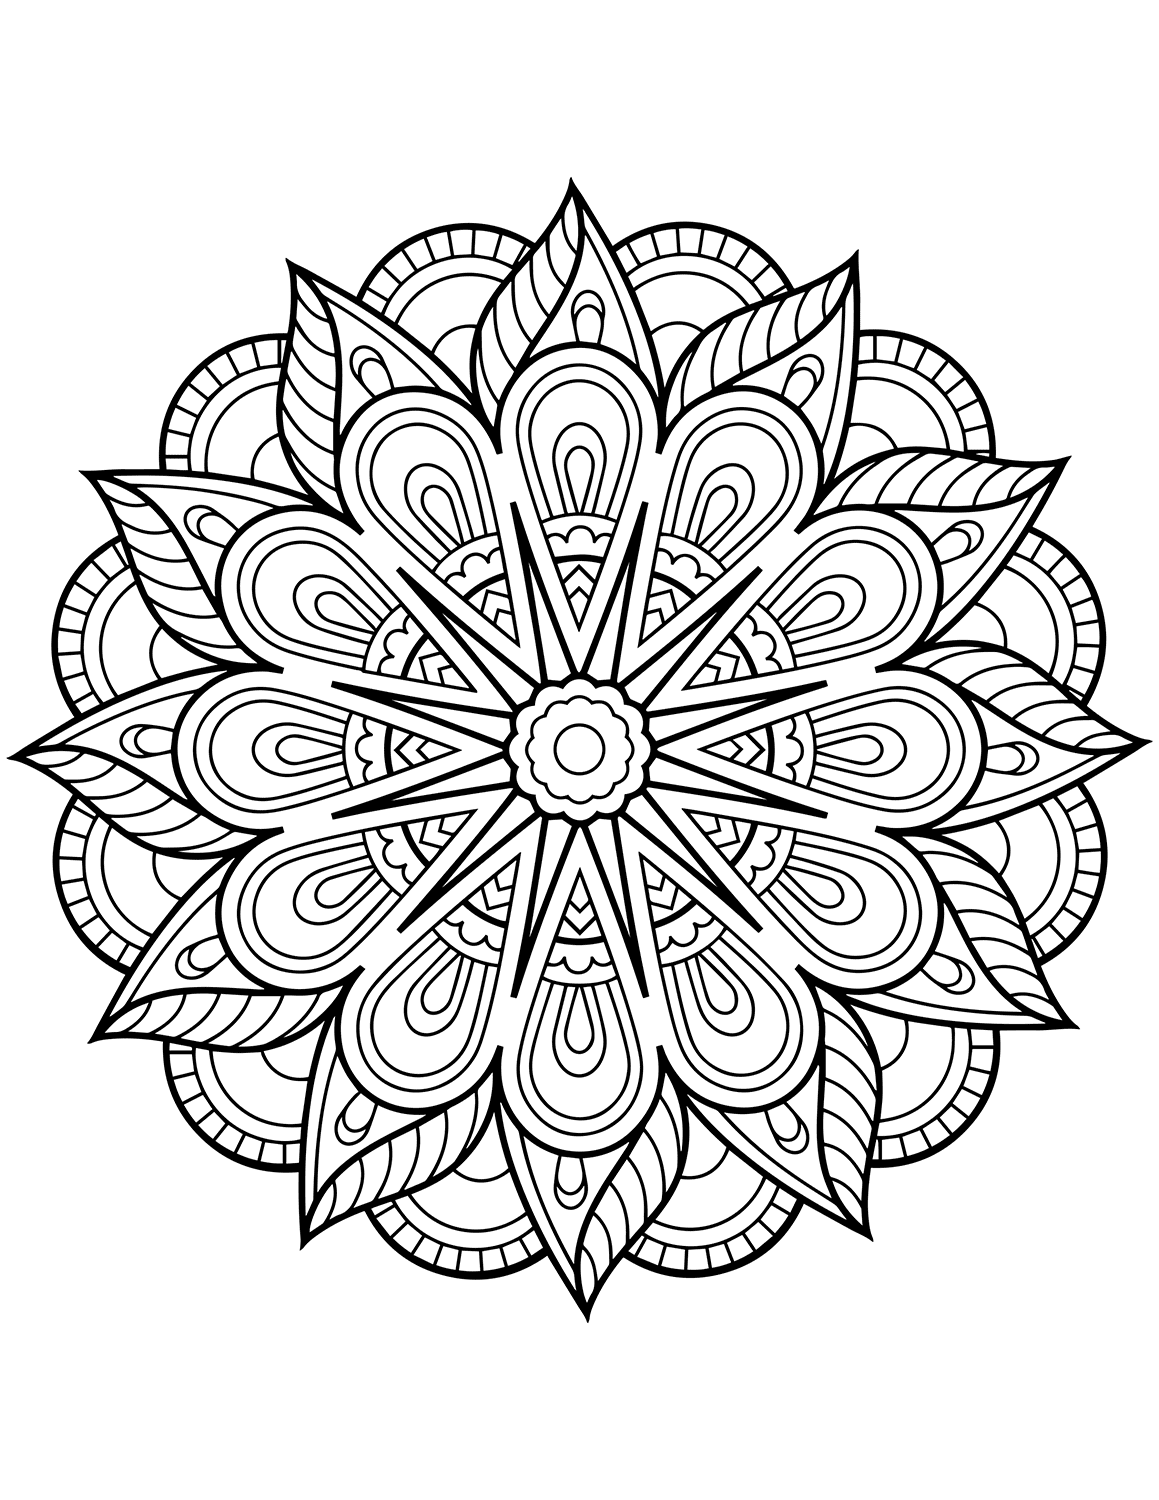 mandala colouring pages for kids intricate mandala coloring pages coloring pages to mandala colouring for kids pages